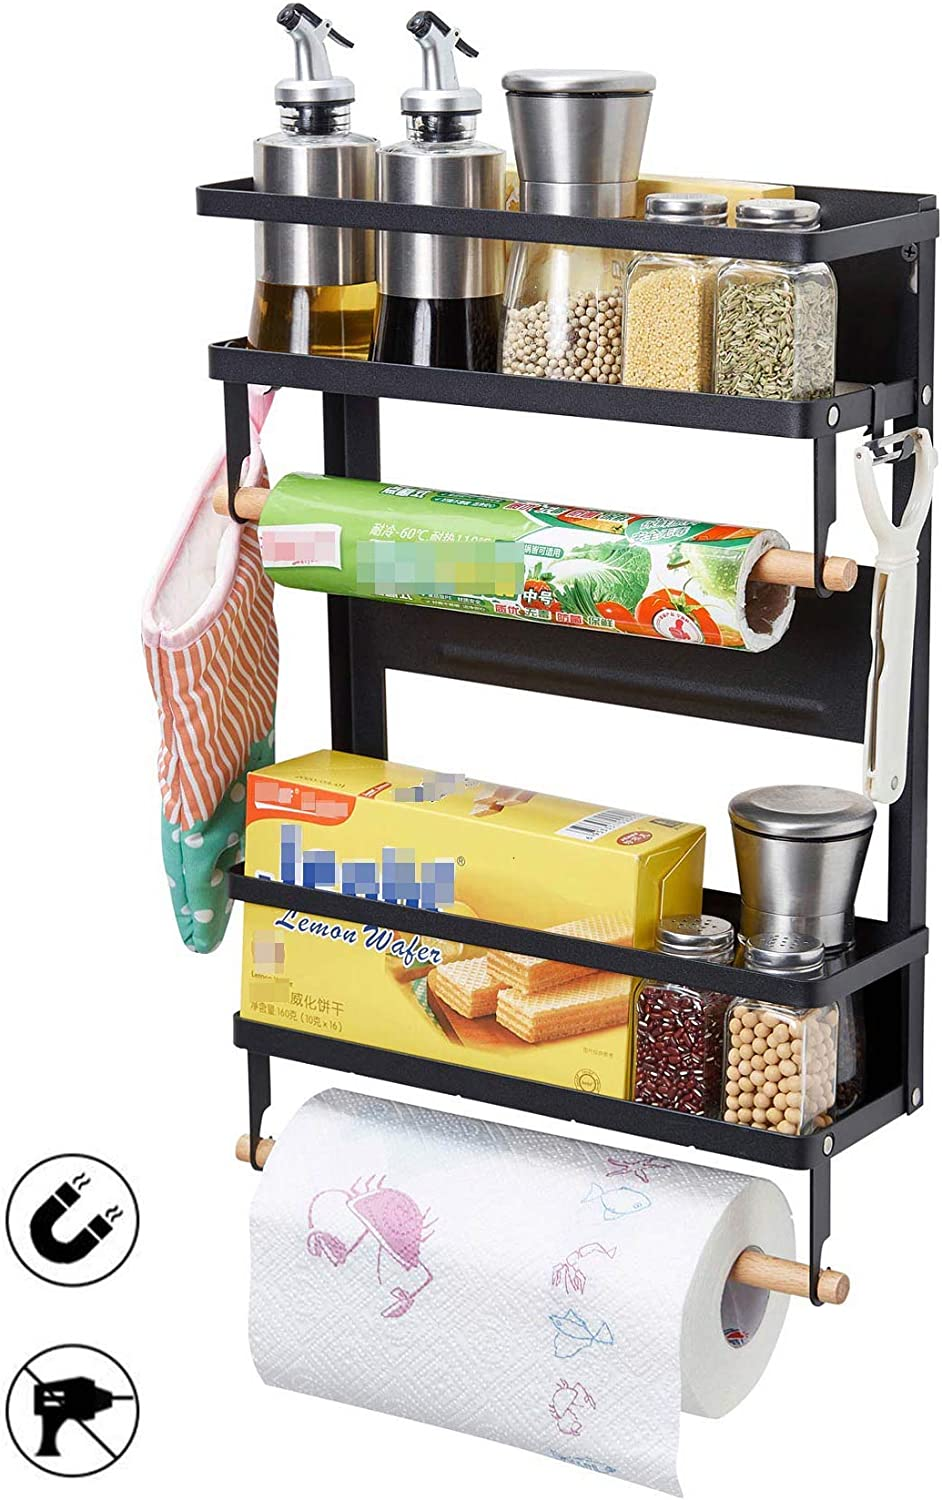 Magnetic Fridge Spice Rack Organizer Storage Holder Kitchen, Magnetic Paper Towel Holder Rack for Refrigerator Shelf Storage Hanger (Large, Black)